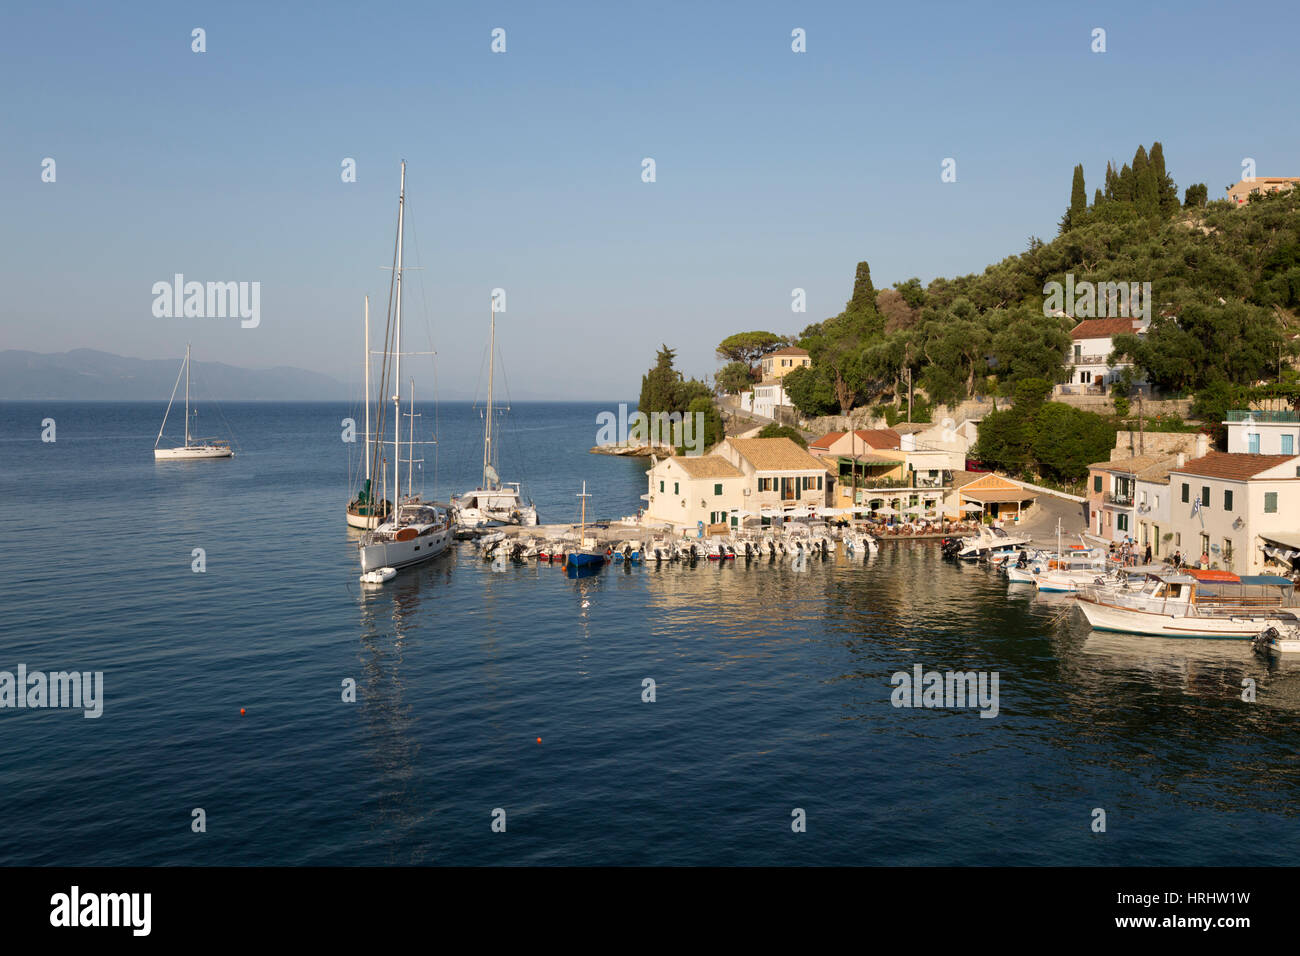 View over harbour, Loggos, Paxos, Ionian Islands, Greek Islands, Greece - Stock Image